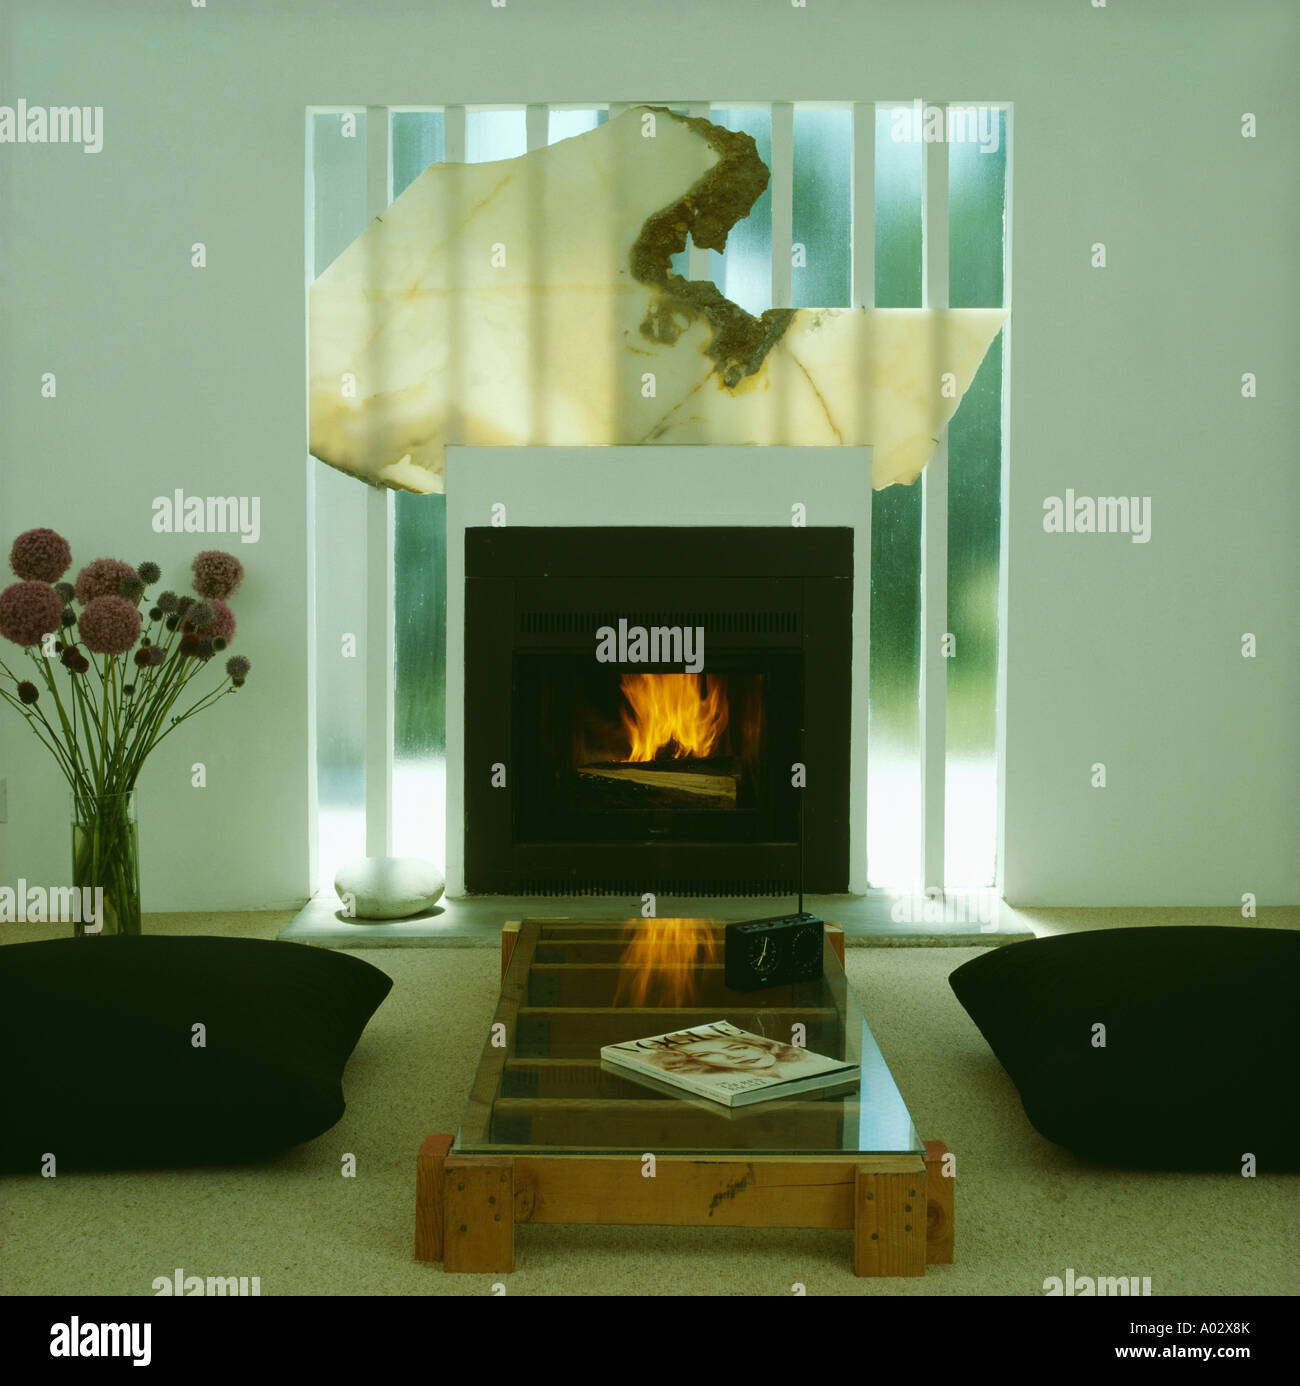 Modern mirrored fireplace in livingroom with black chairs and